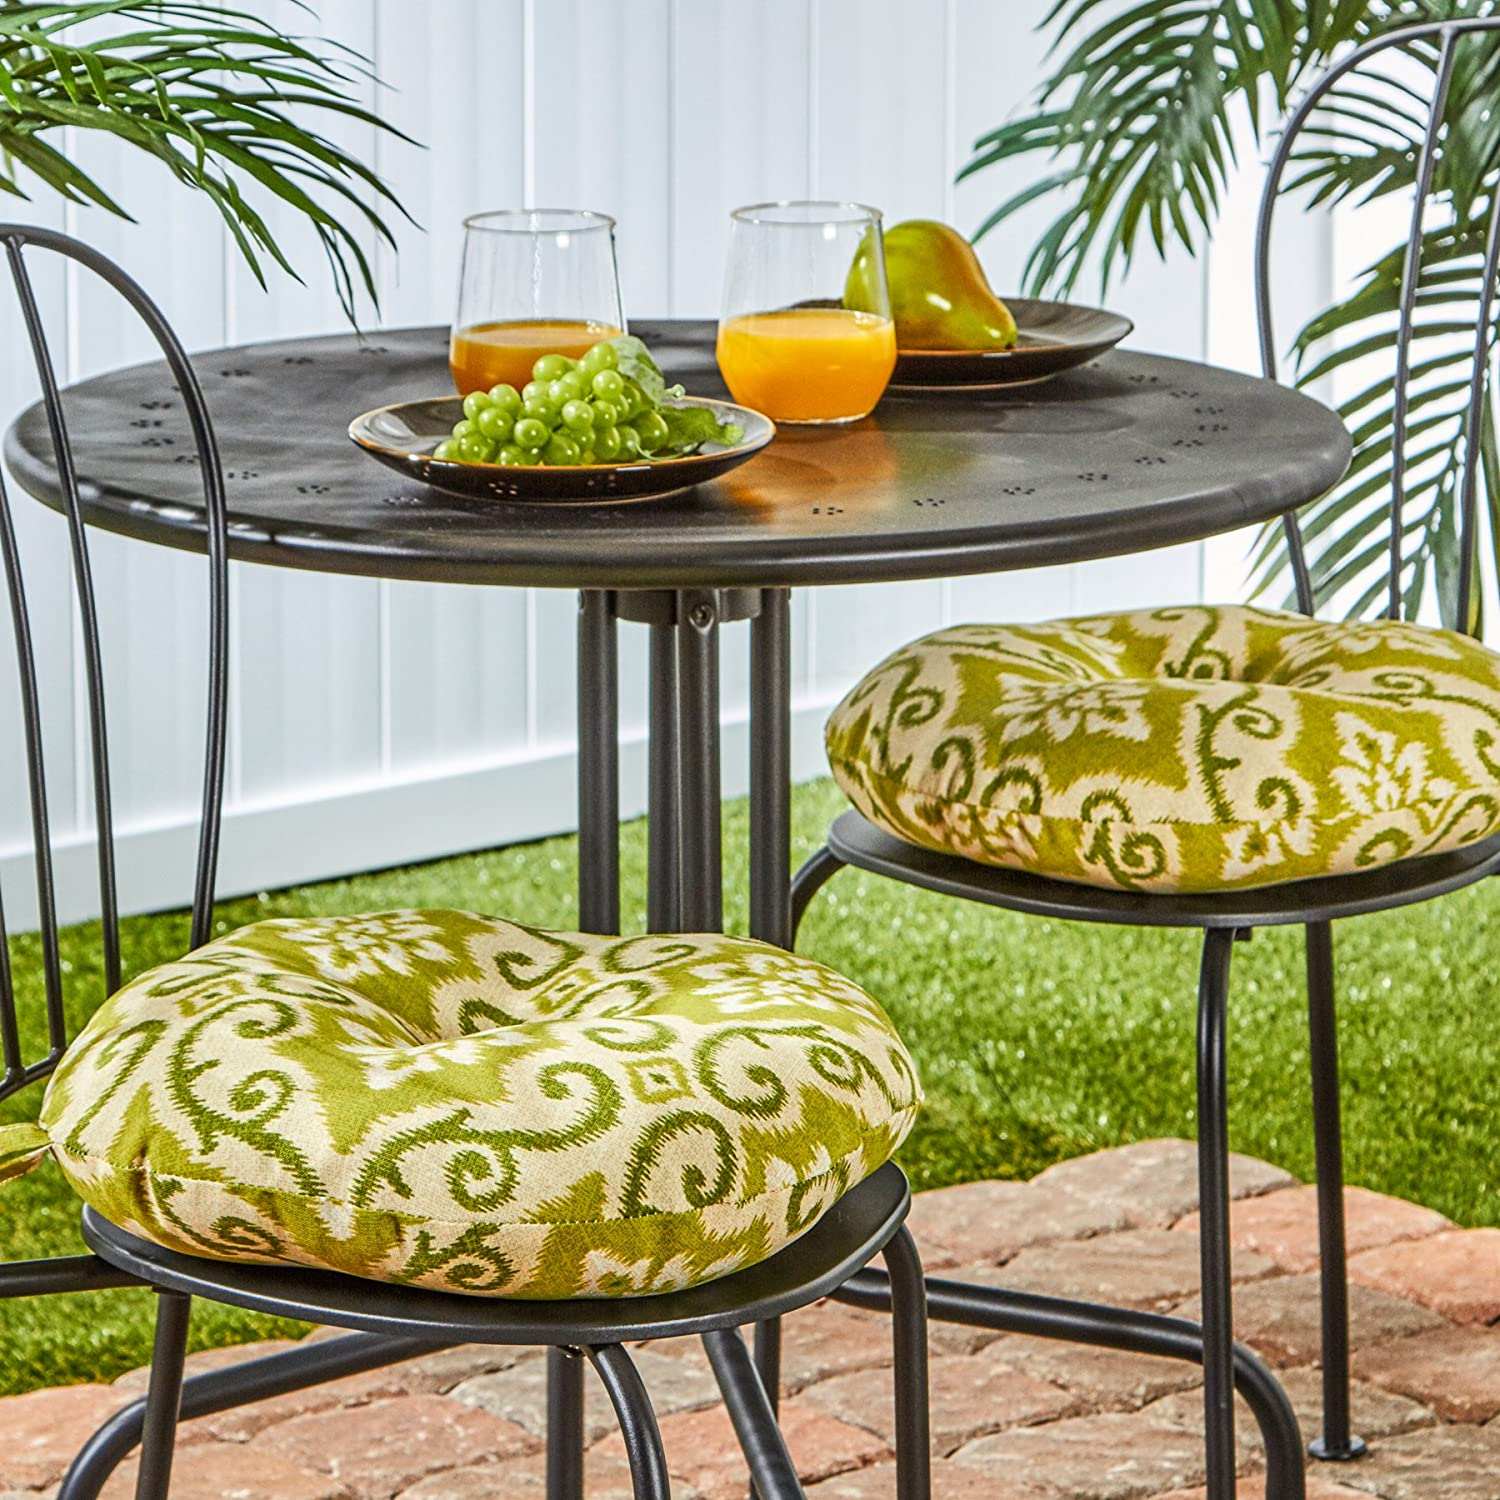 Superieur Amazon.com : Greendale Home Fashions Round Indoor/Outdoor Bistro Chair  Cushion, 15 Inch, Shoreham, Set Of 2 : Garden U0026 Outdoor